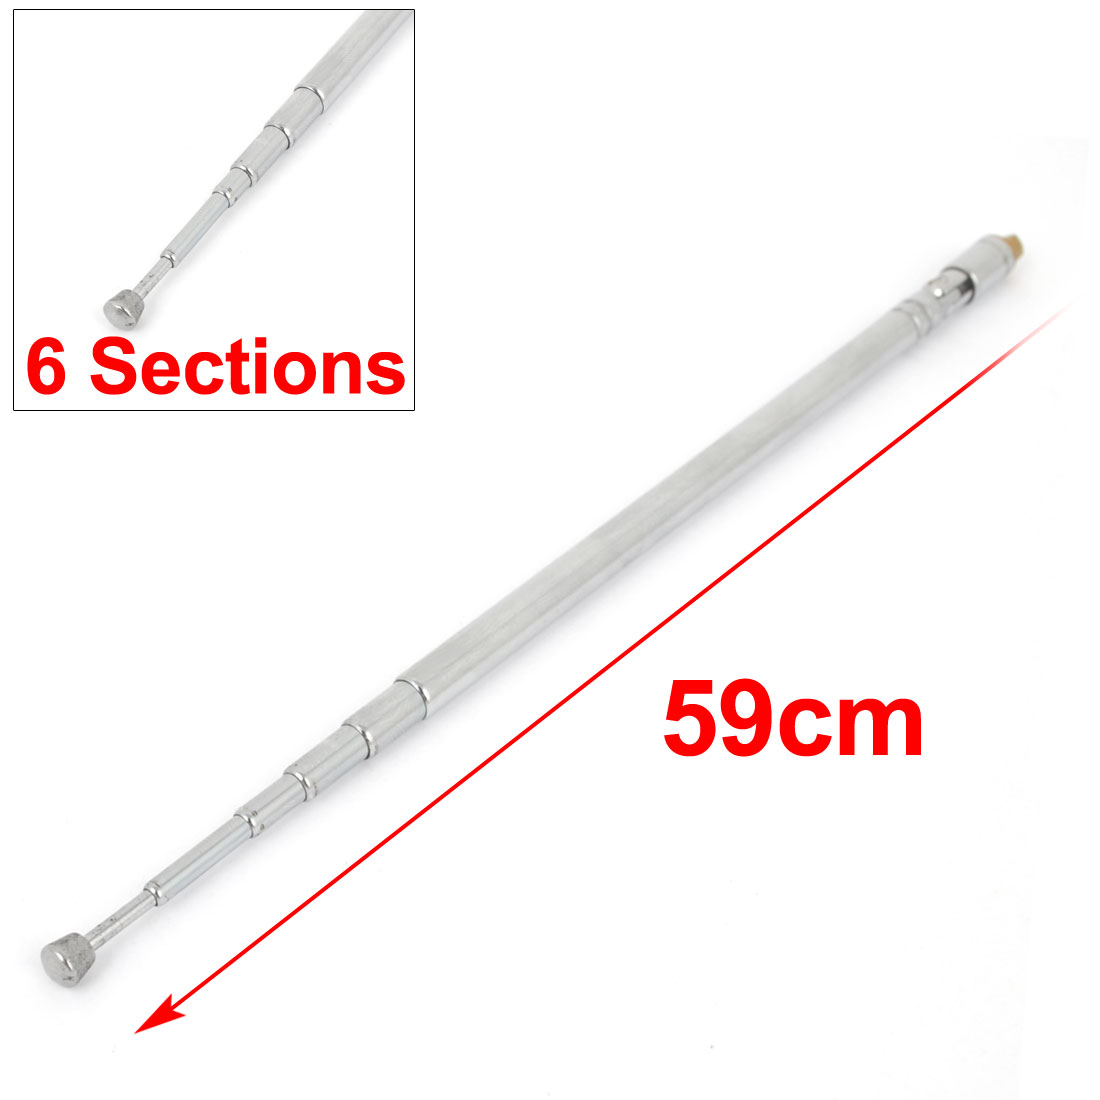 Radio TV Female Thread Telescopic Antenna Remote Aerial Replacement 59cm Length 6 Sections